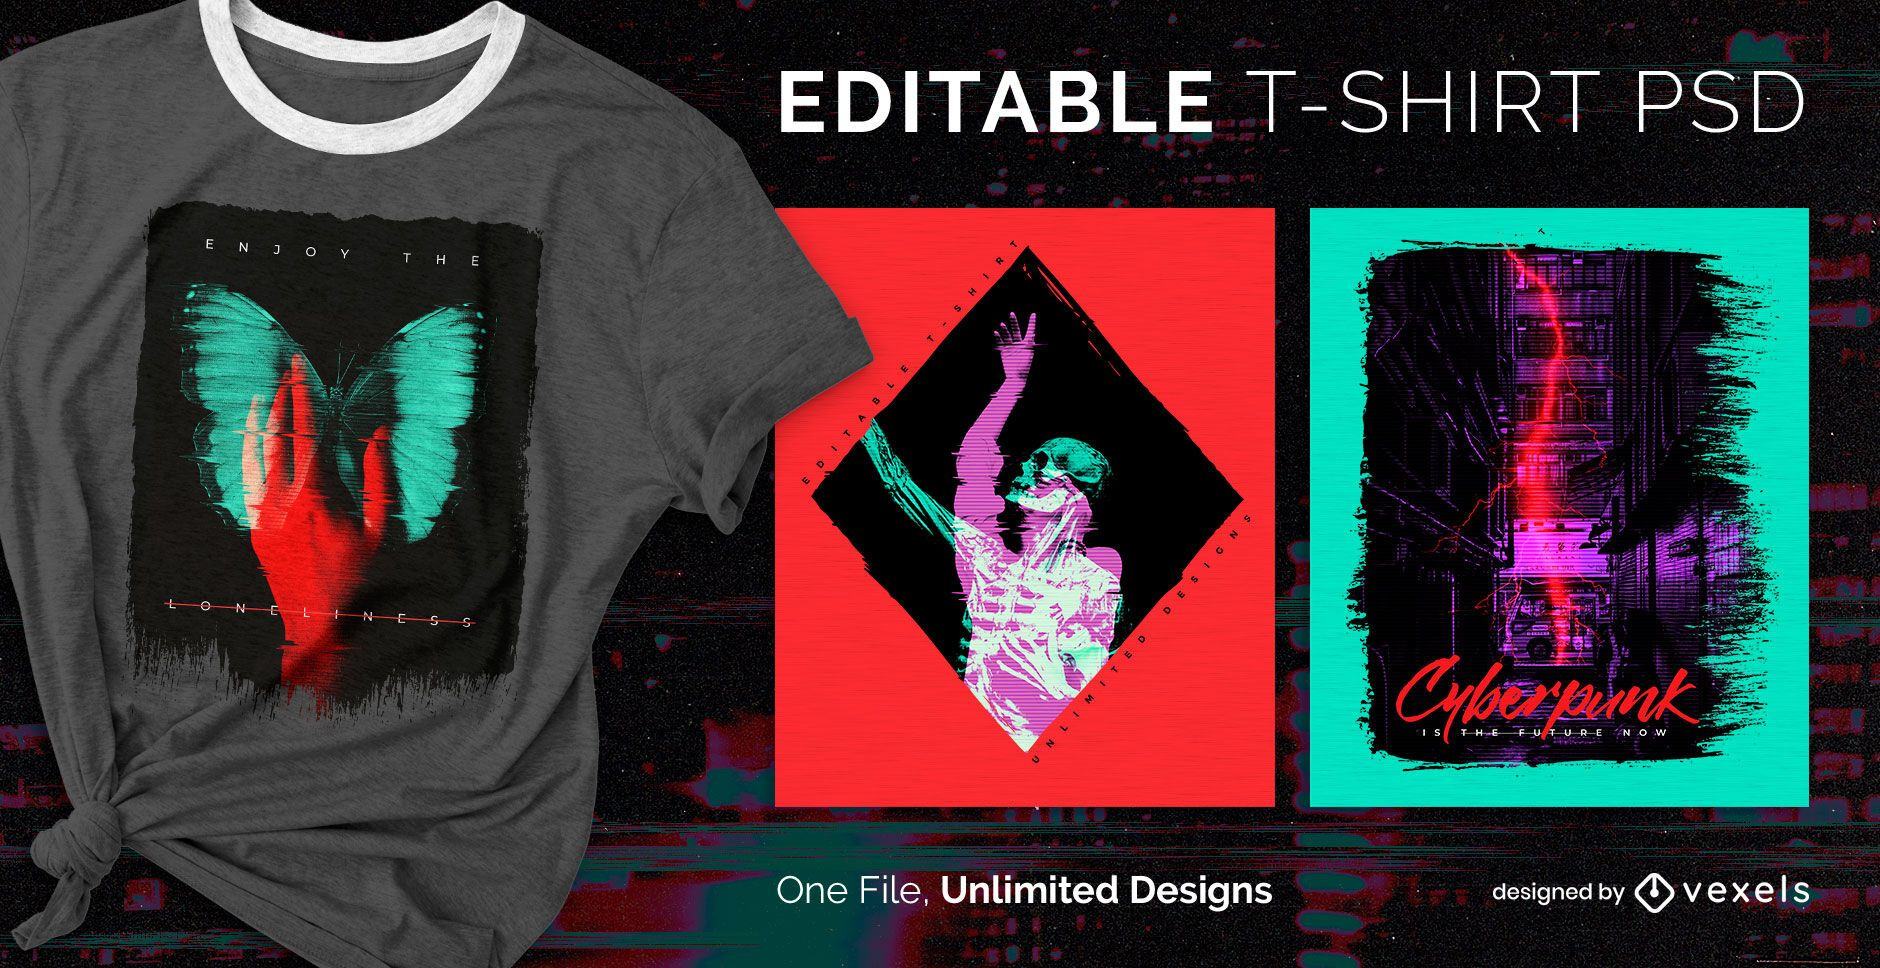 Duotone double exposure scalable t-shirt psd